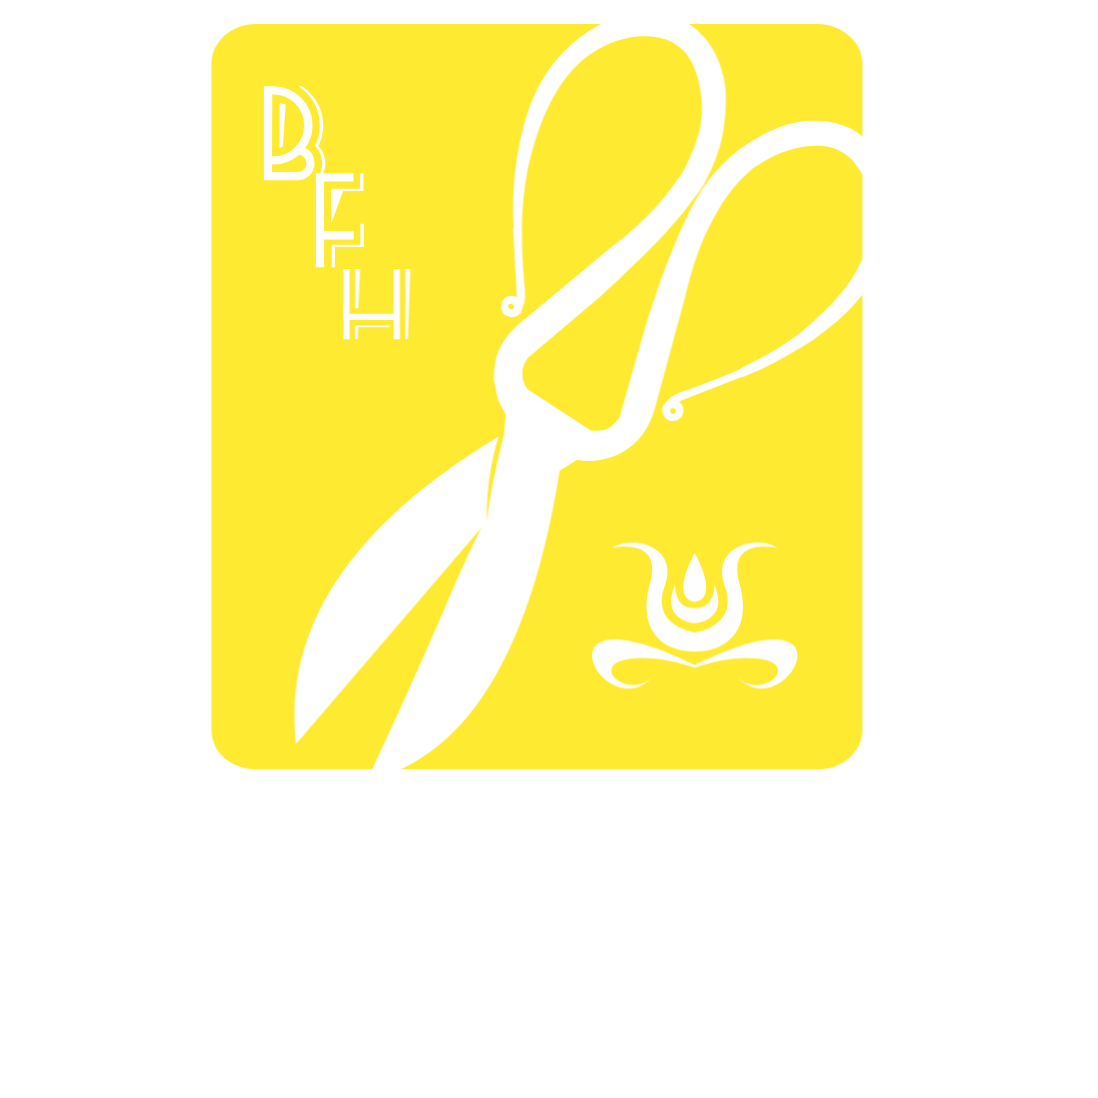 bear fruit hair